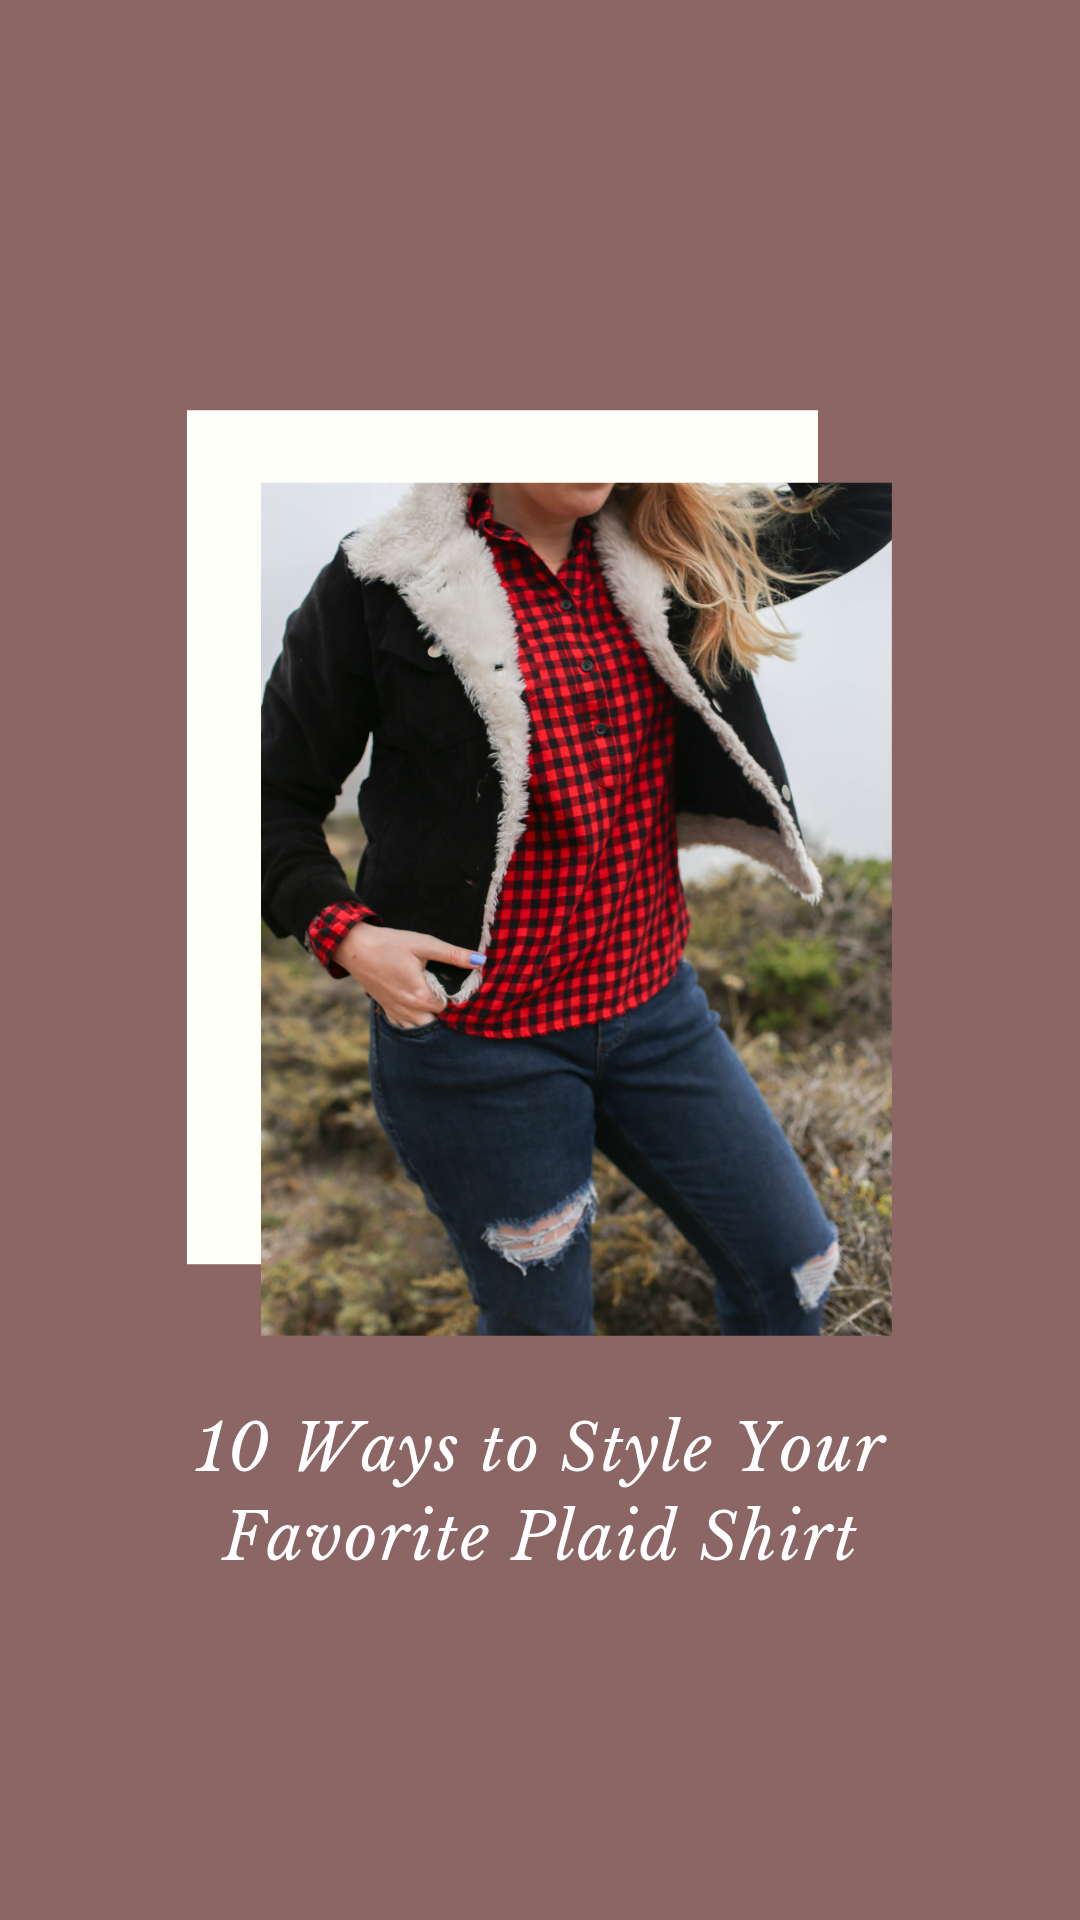 Gennifer Rose_10 Ways to Style Your Favorite Plaid Shirt.png